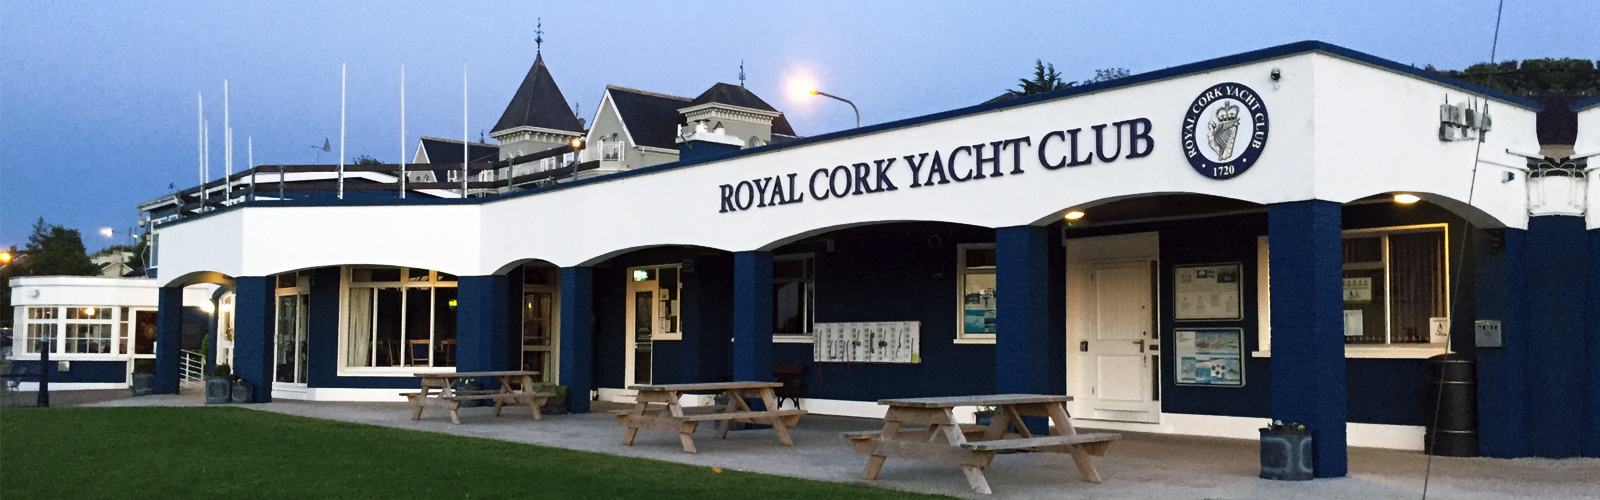 "Based in Crosshaven, Cork, we are the oldest yacht club in the world <a href=""http://www.royalcork.com/club-history/"">..Read more </a>."